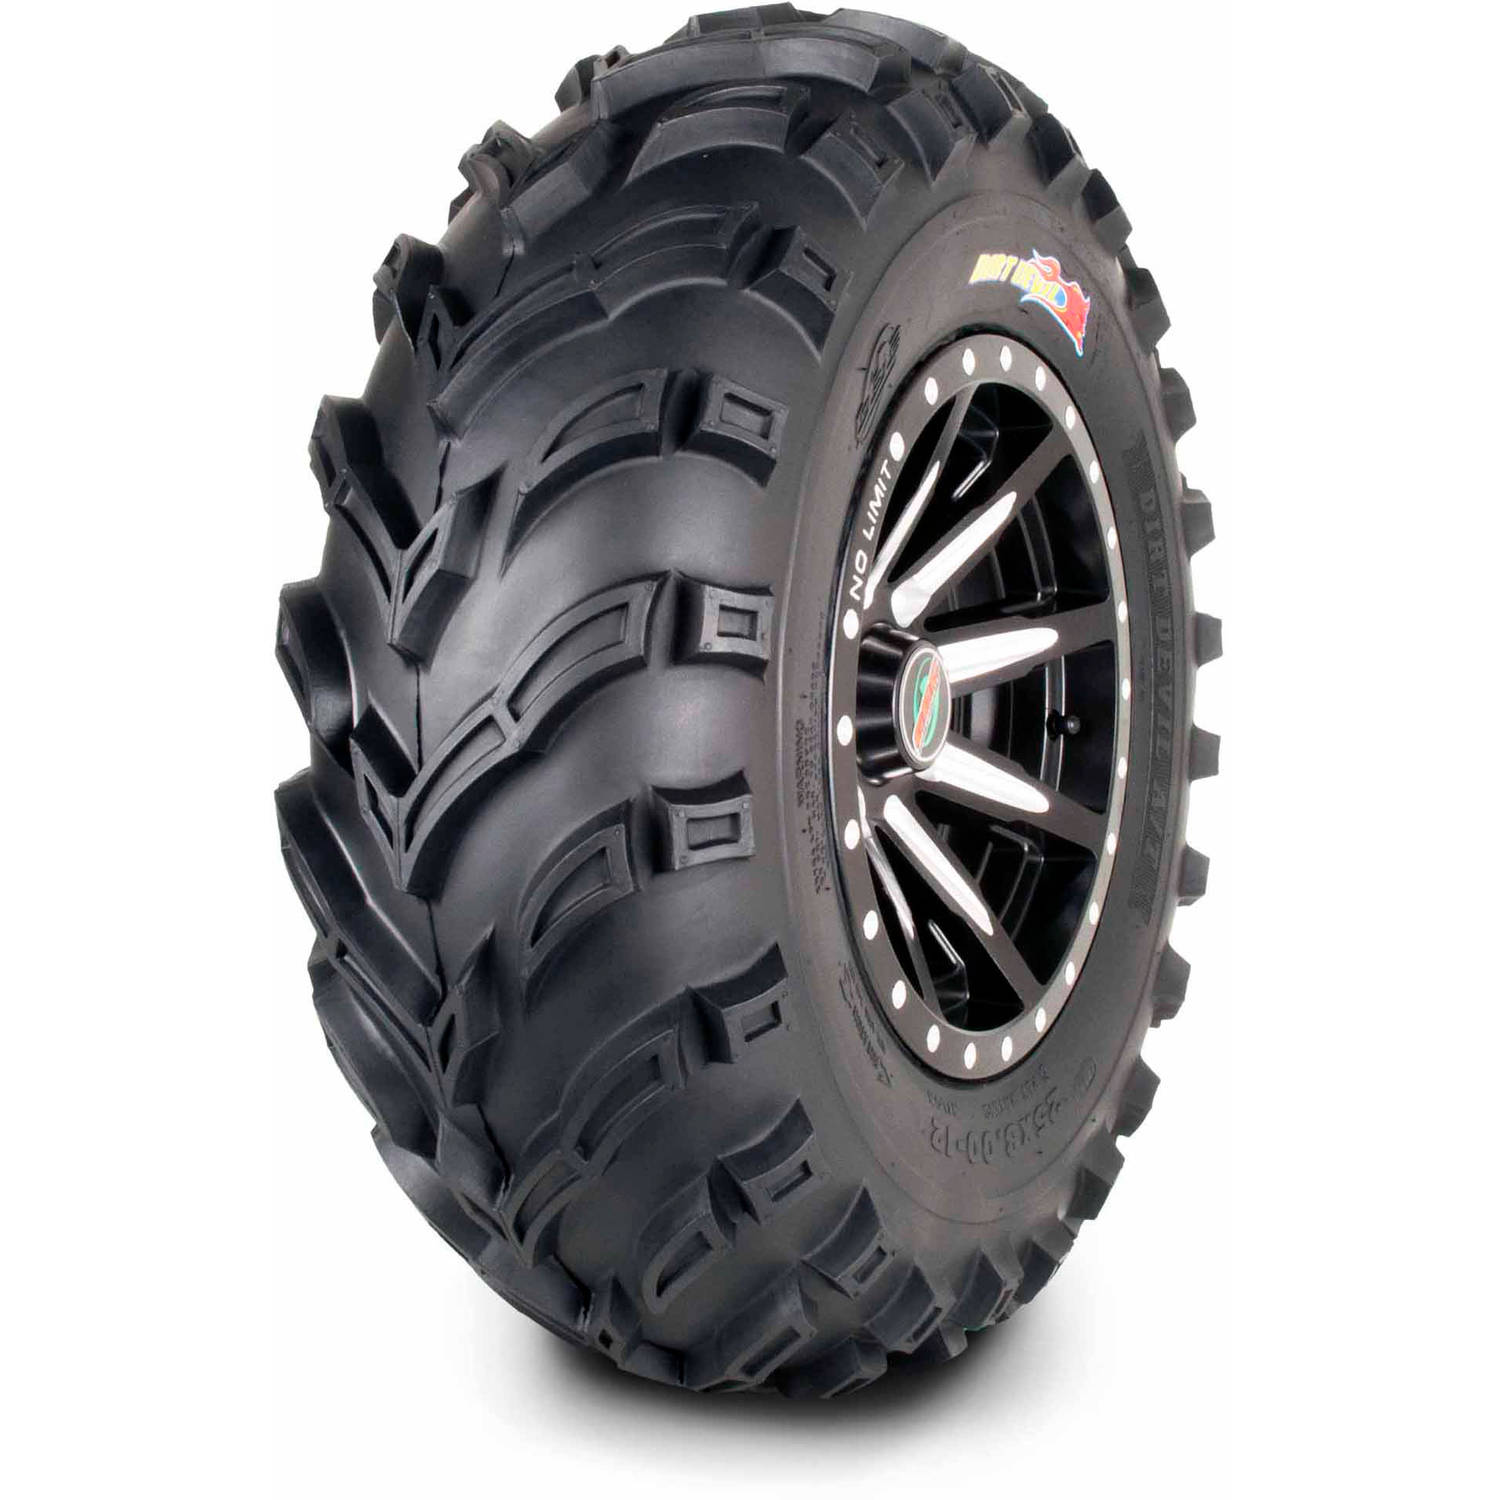 GBC Motorsports Dirt Devil 24X10.00-11 6 Ply ATV/UTV Tire (Tire Only)